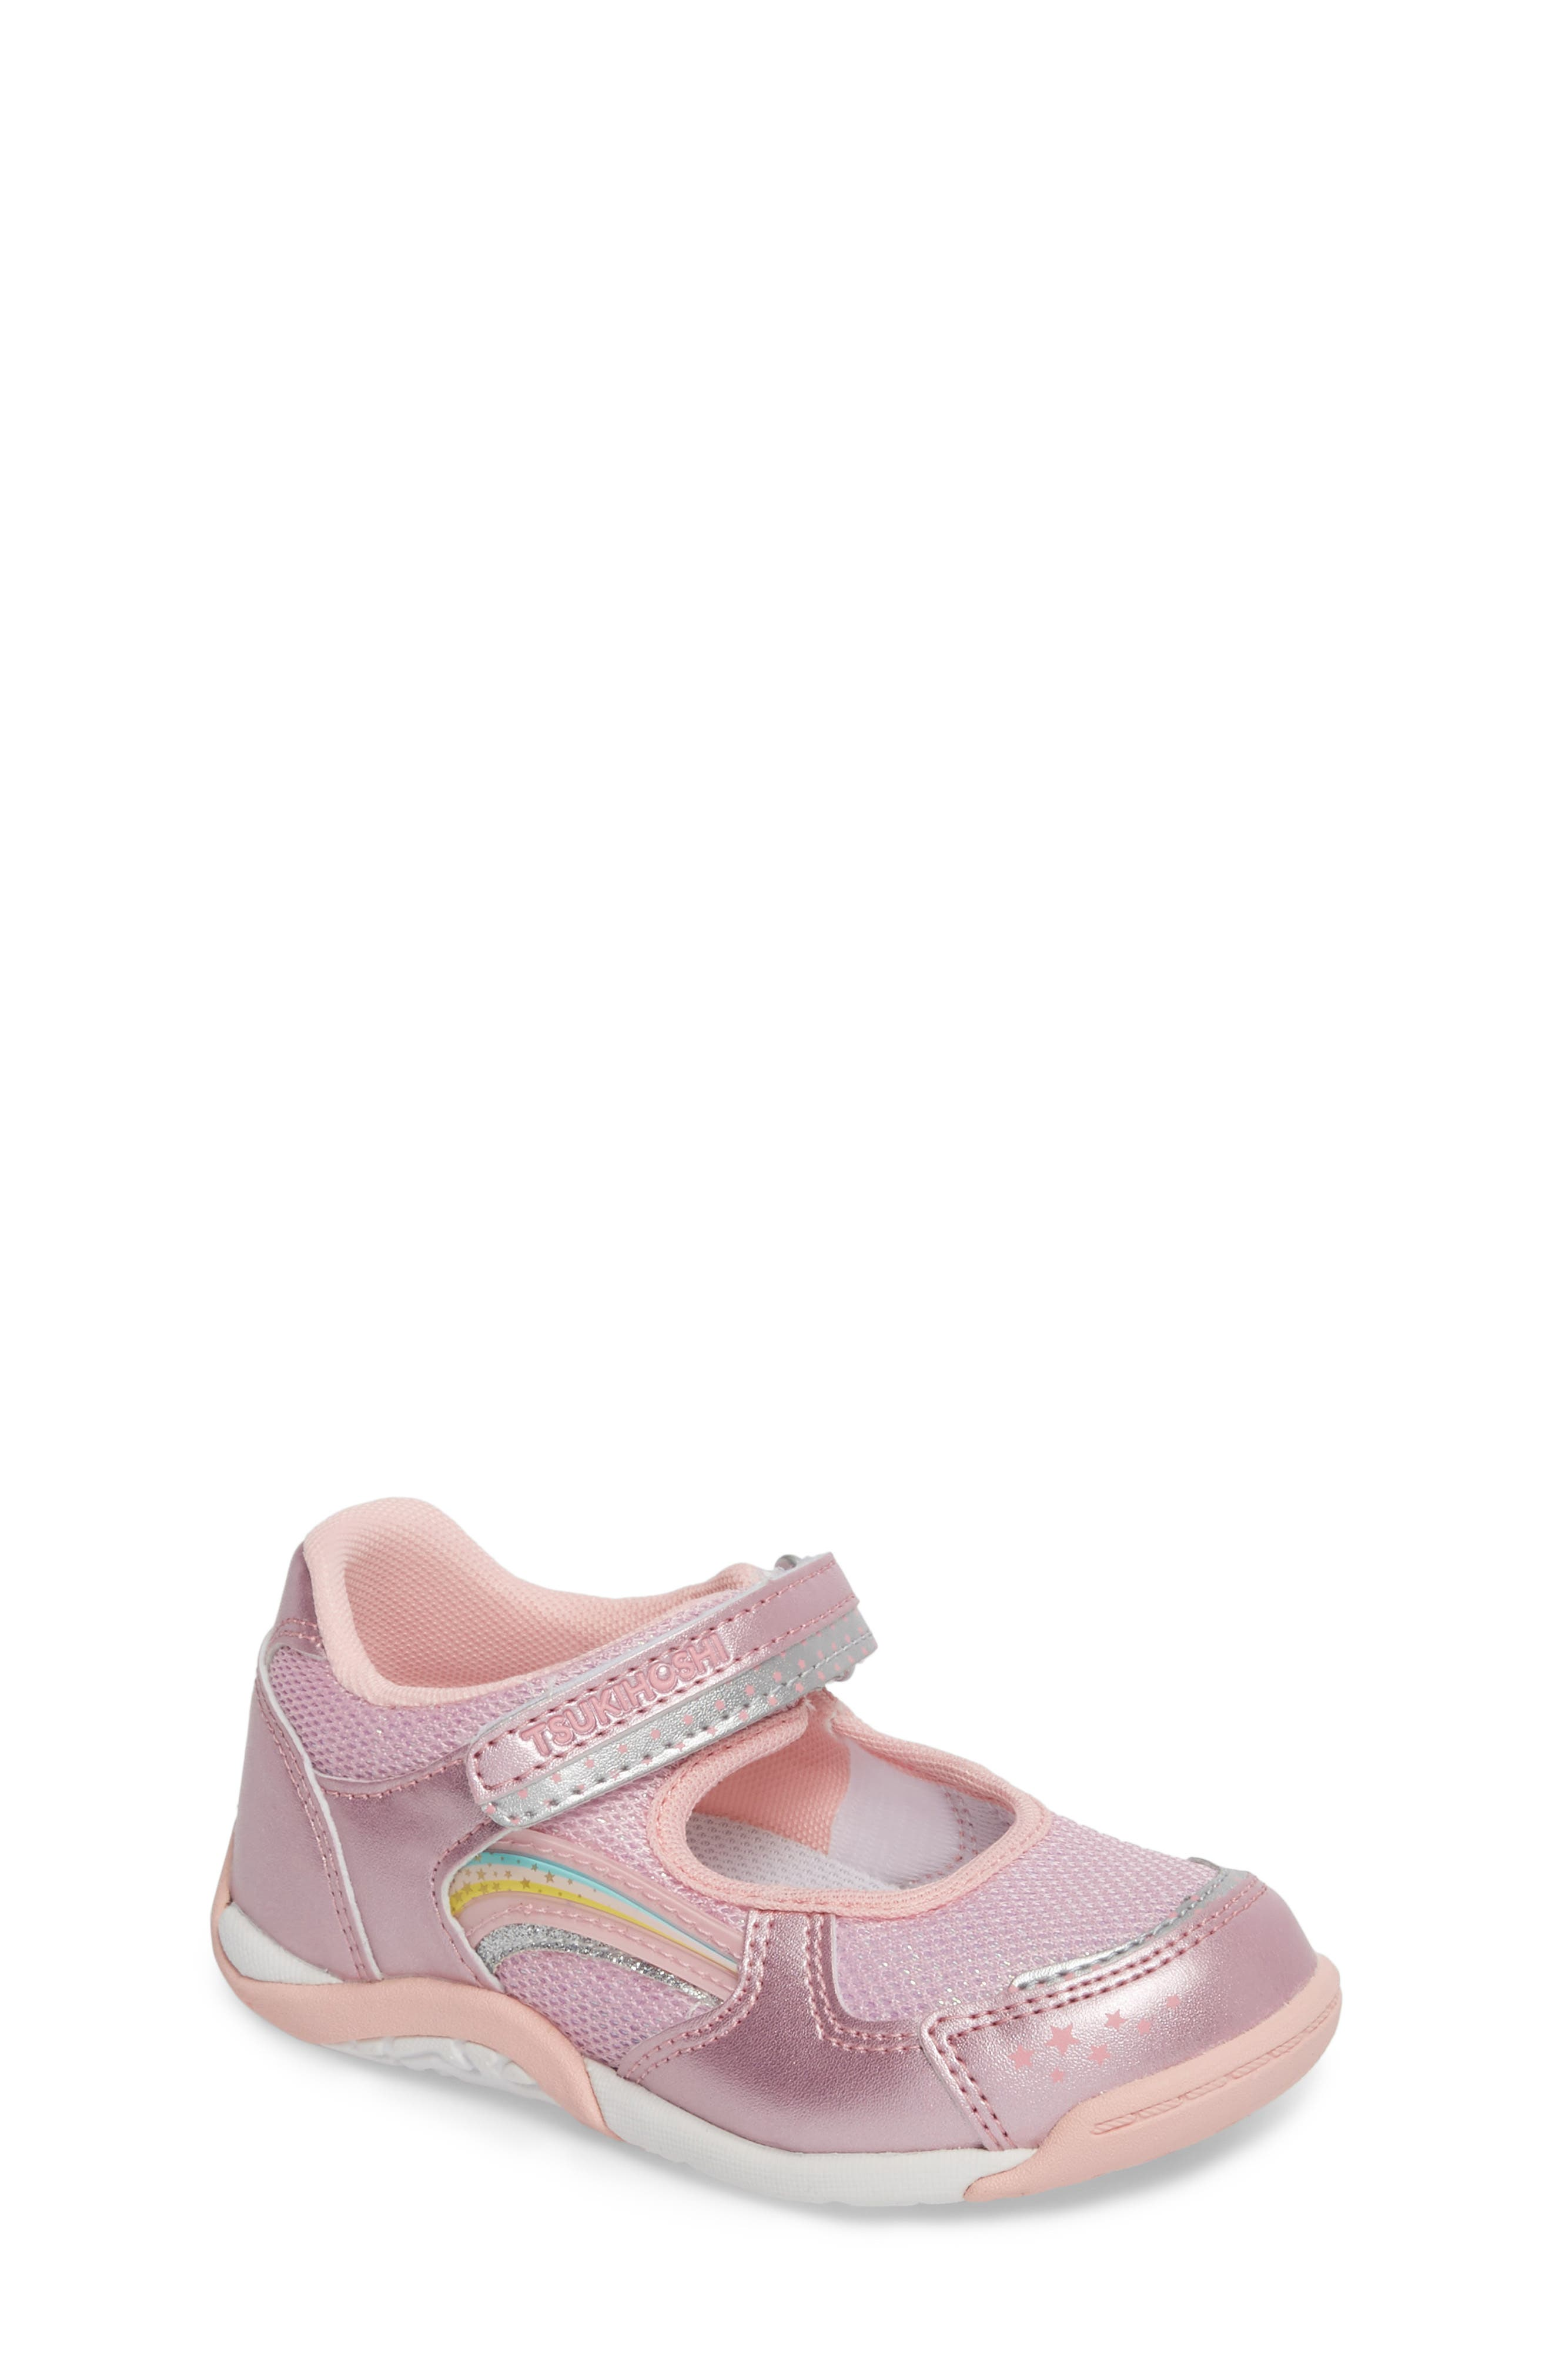 Twinkle Washable Sneaker,                             Main thumbnail 1, color,                             Rose/ Pink